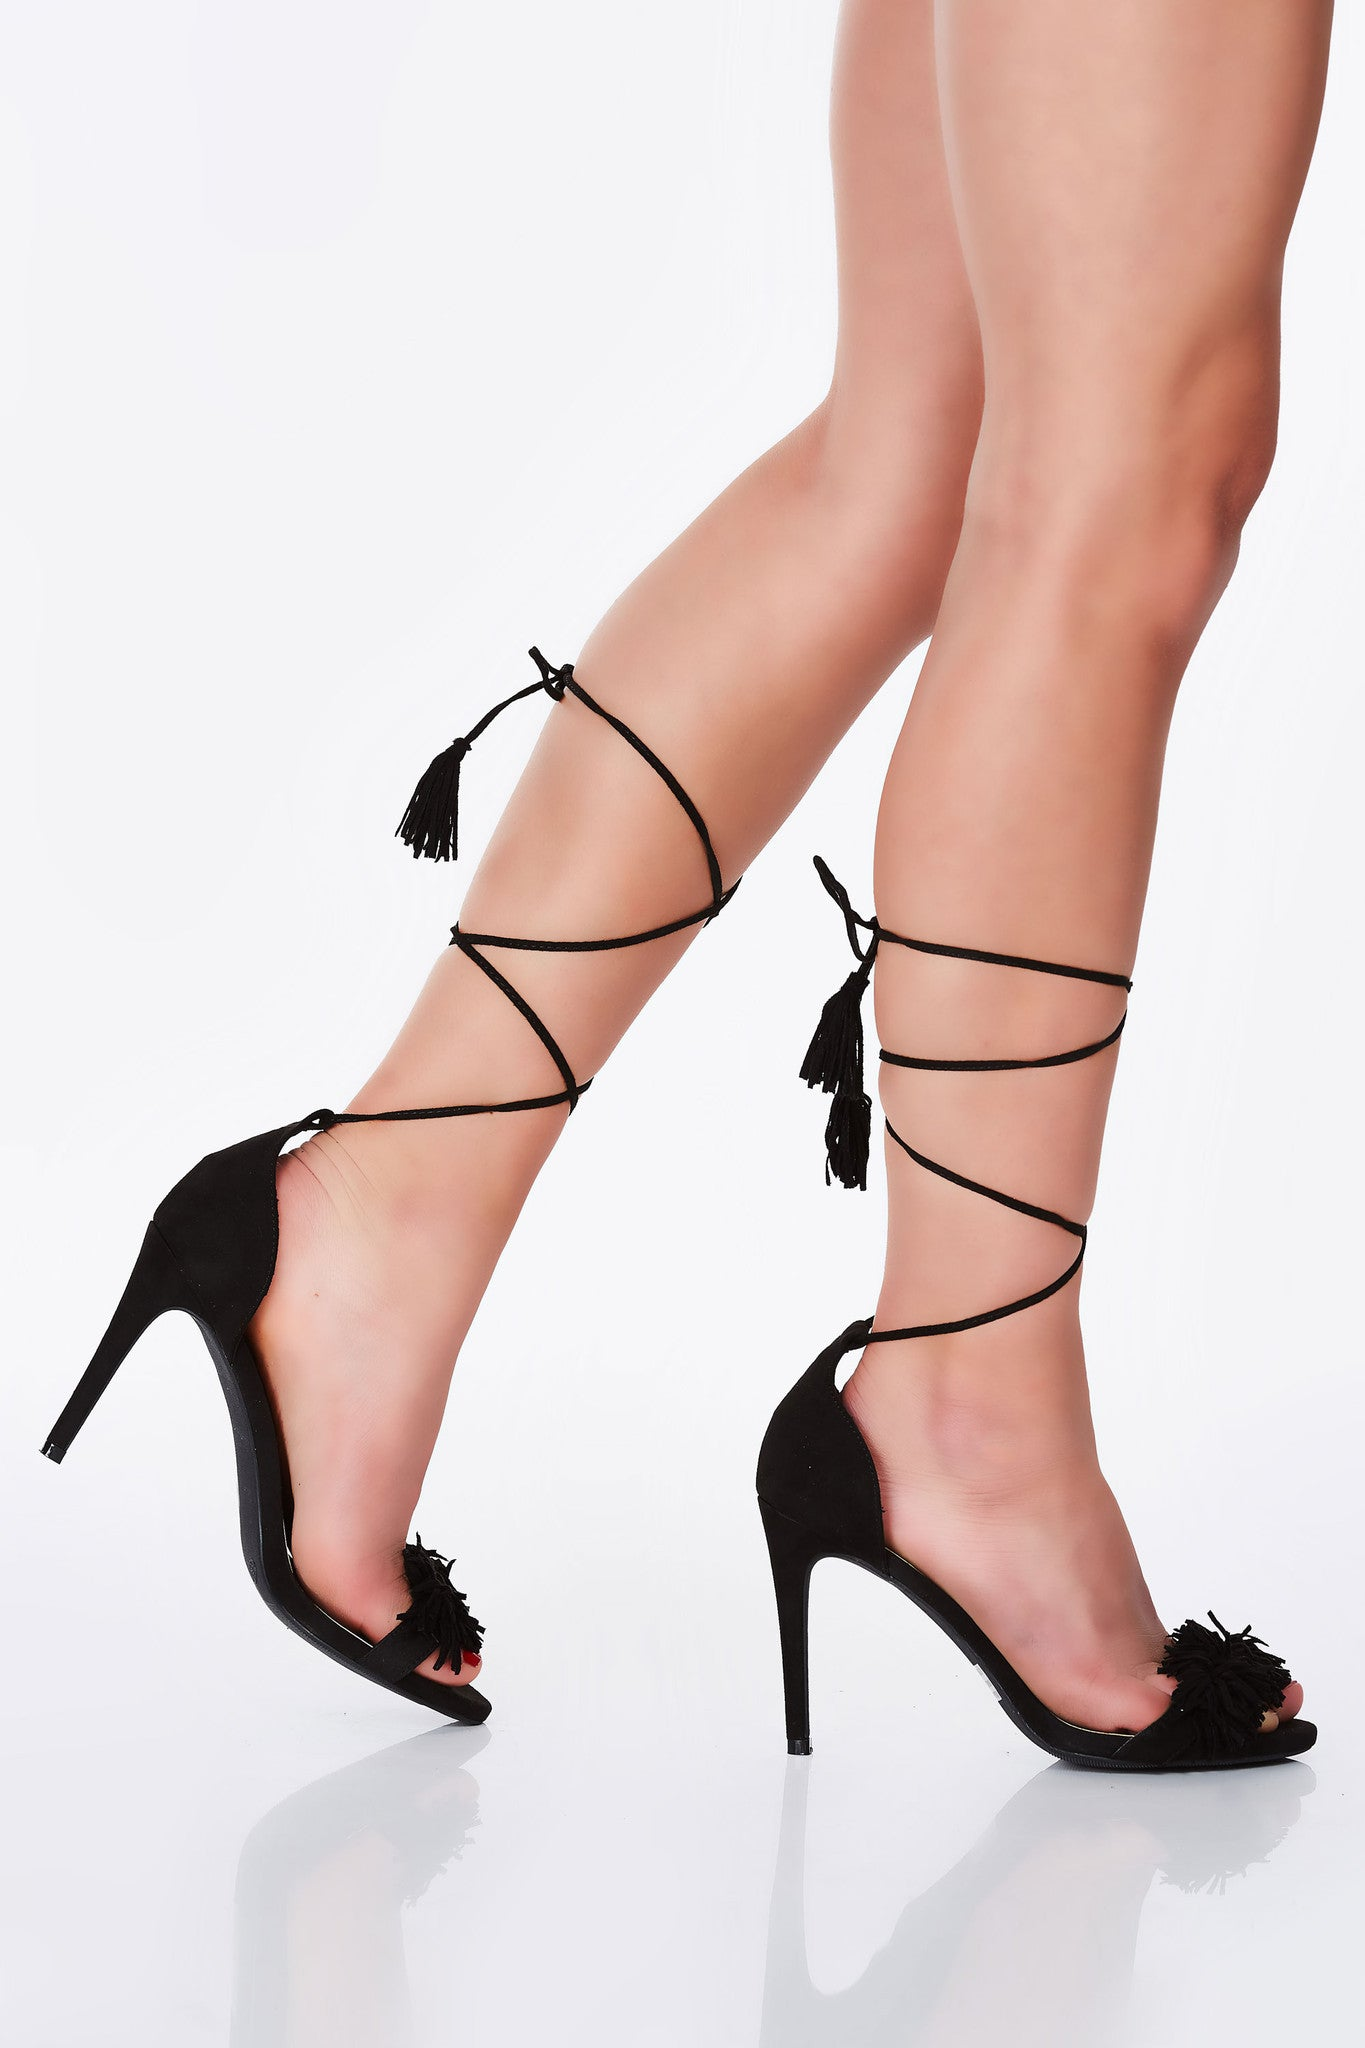 An incredible pair of pumps with a sleek, trendy design. Amazing faux suede exterior with chic tassel and fringe detailing. Sexy lace up finish, perfect for a hot date night!